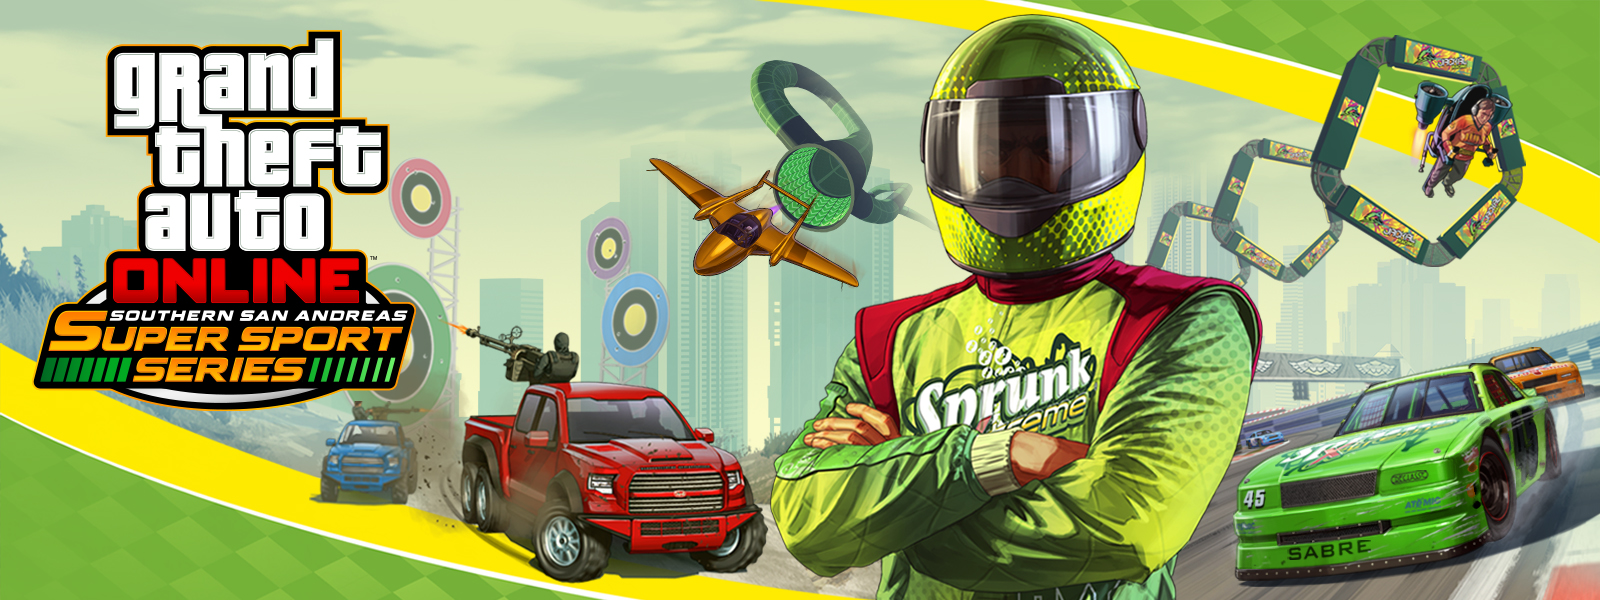 Grand Theft Auto Online Southern San Andreas Super Sports Series, Sprunk Racecar-chauffeur staat met gekruiste armen voor een groot aantal verschillende races op de achtergrond